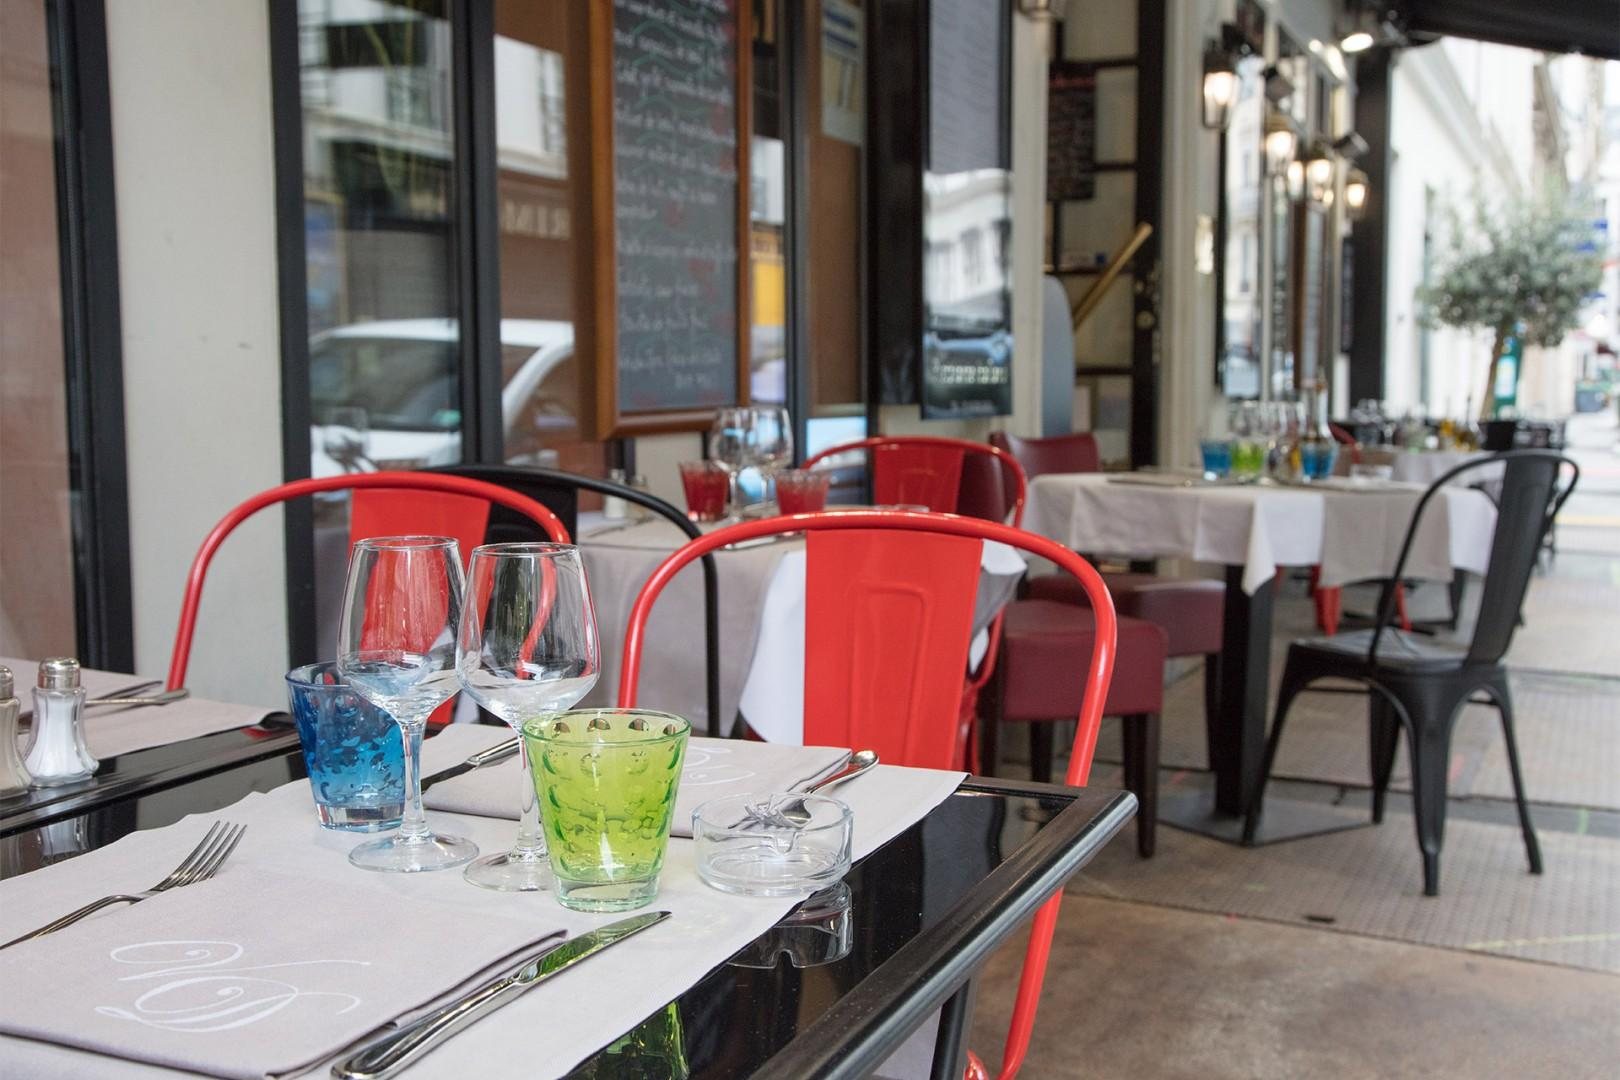 There are many lovely cafes and restaurants near the apartment.